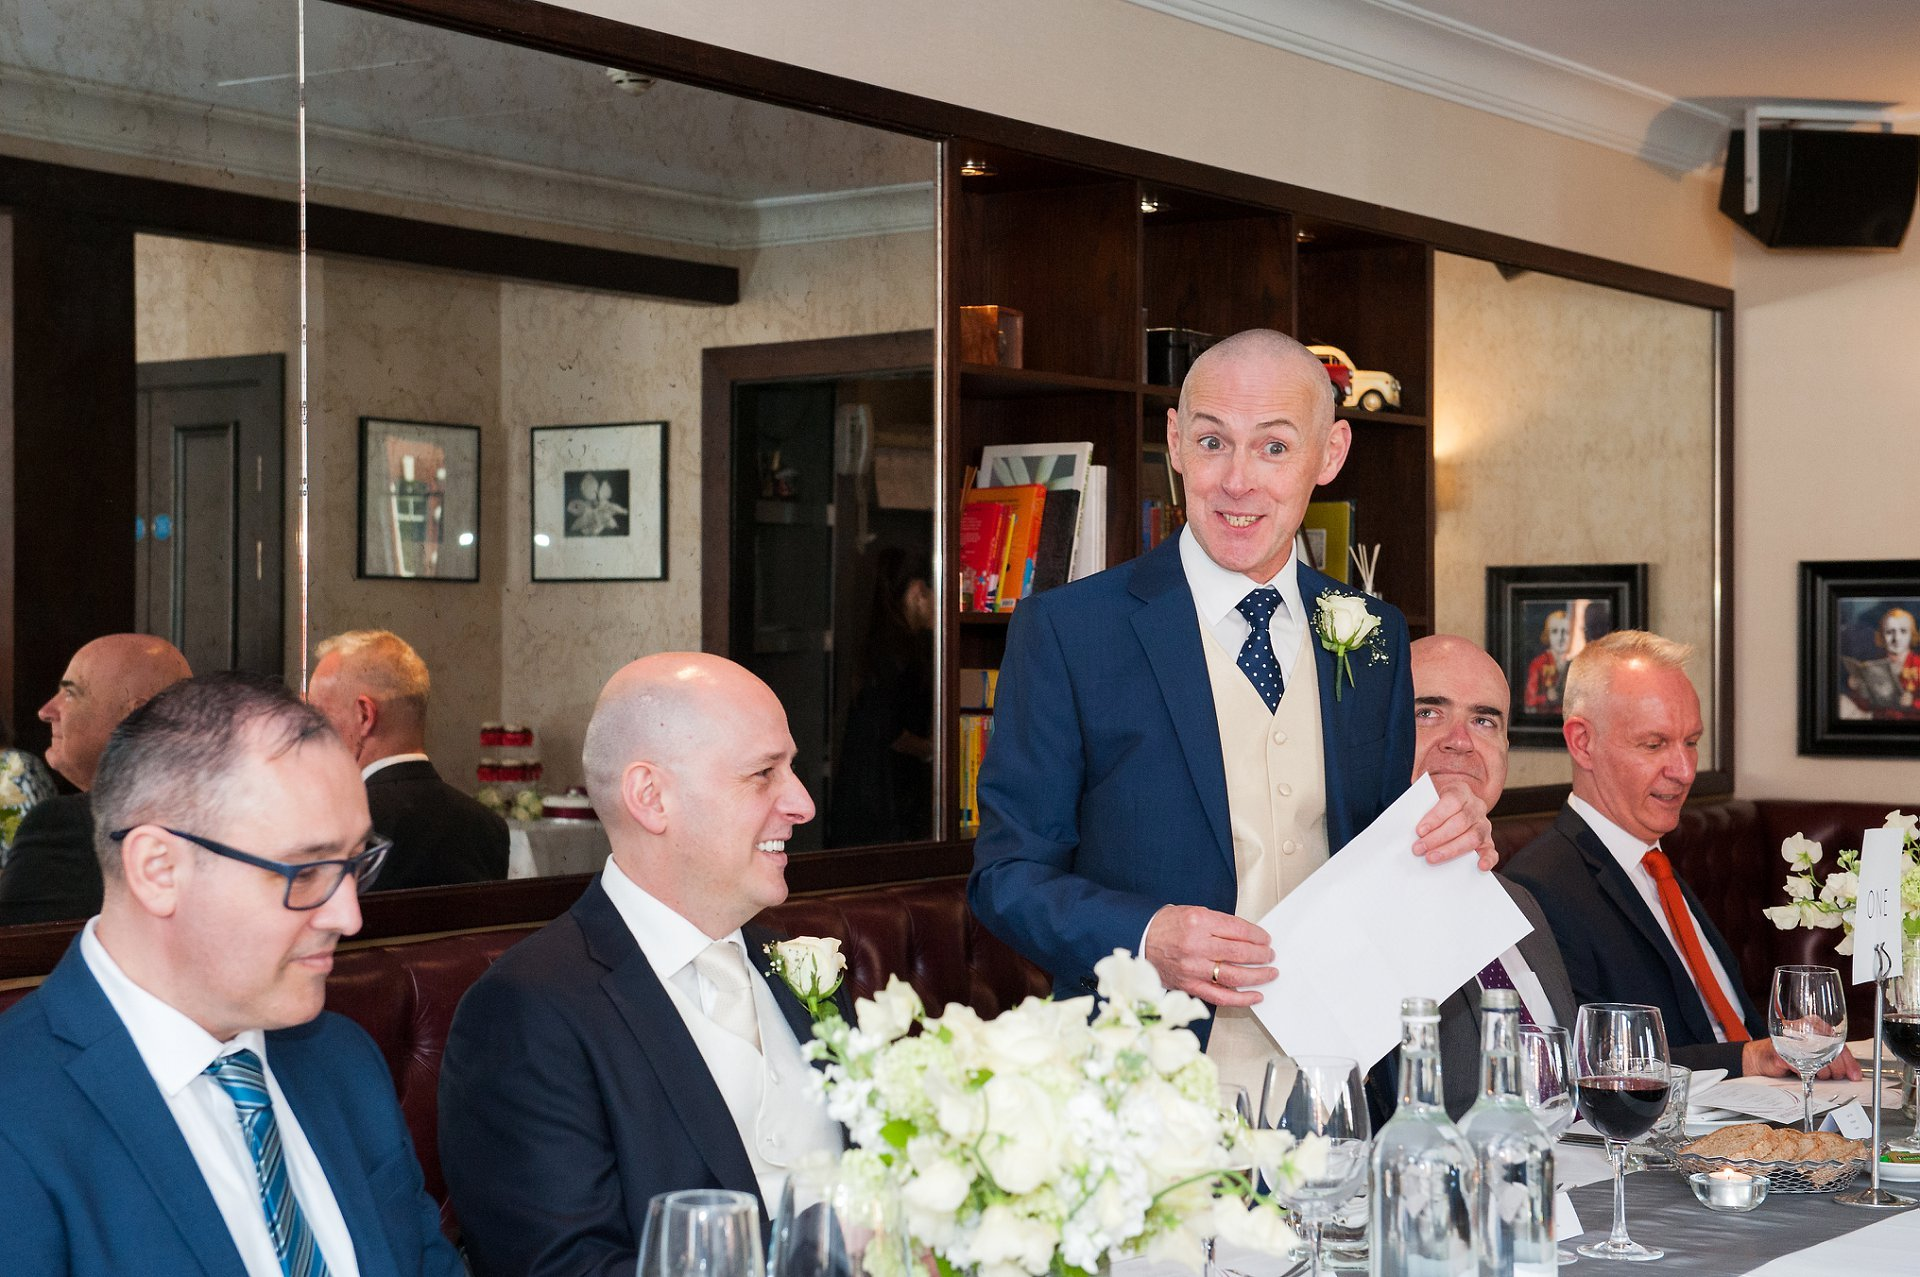 George makes a speech prior to the meal starting at Beaufort House